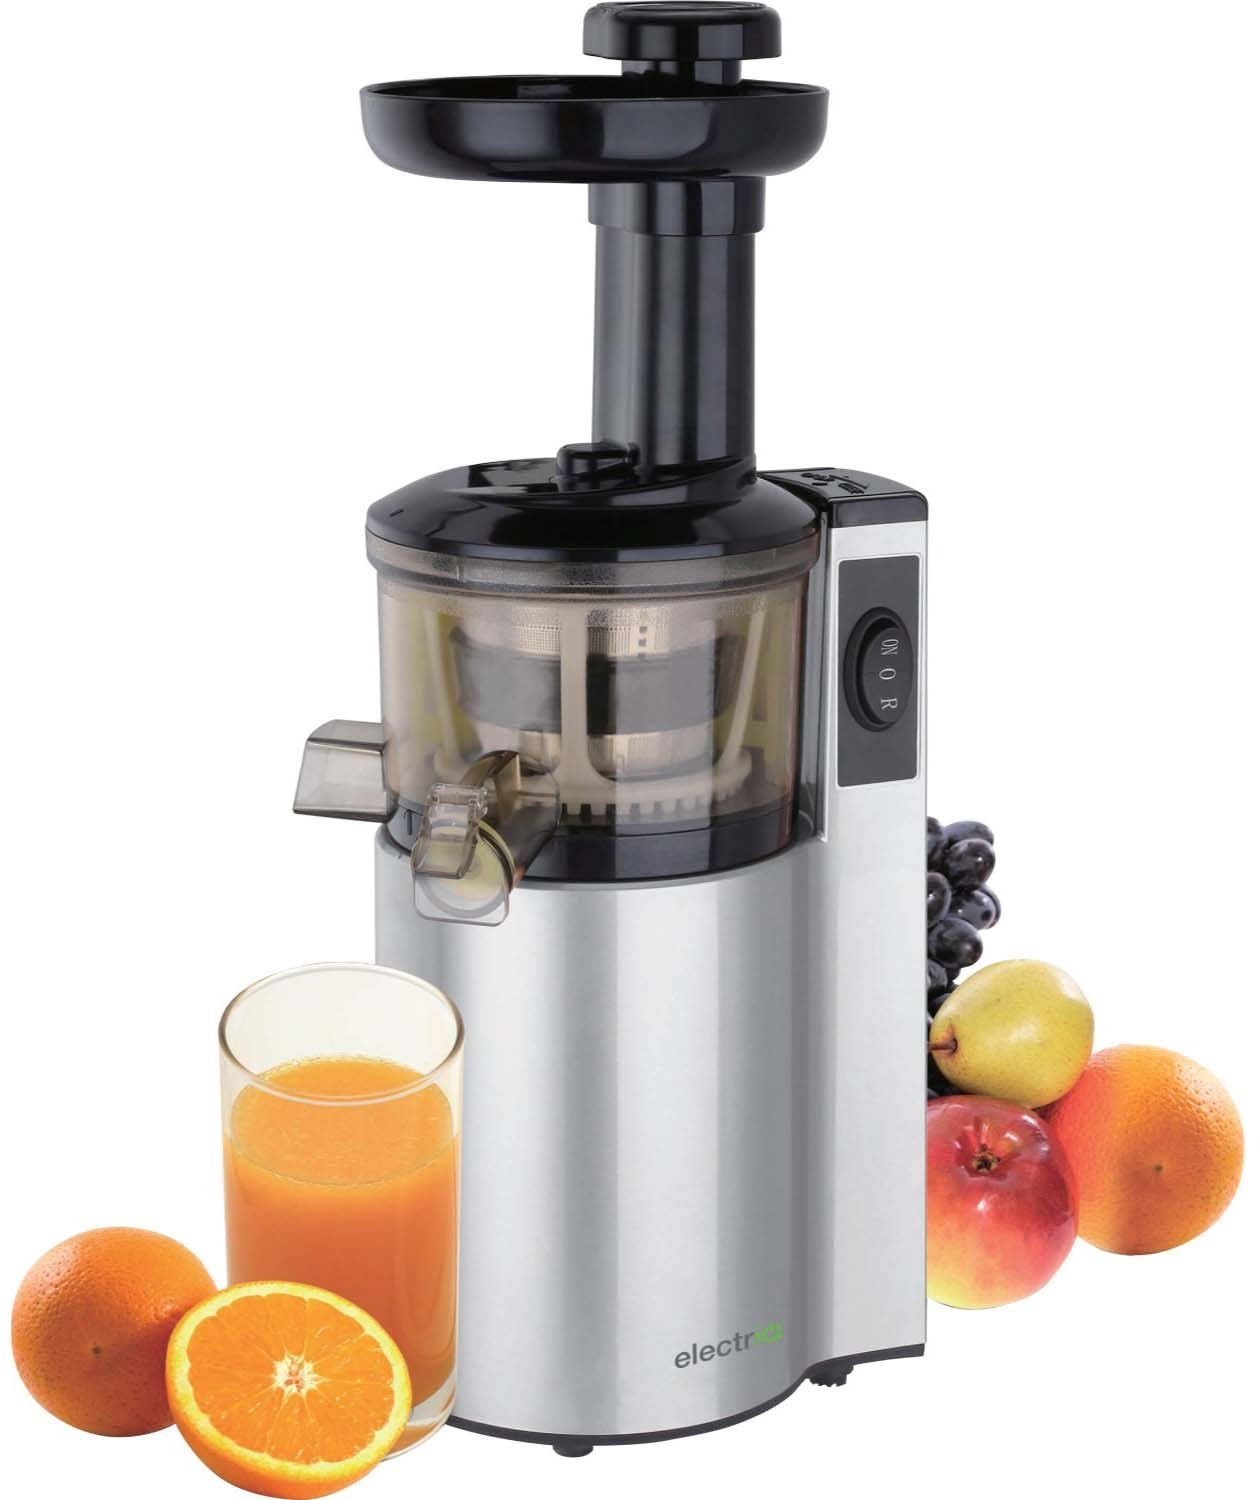 Electriq Premium Cold Pressed Vertical Slow Juicer And Smoothie Maker Review : ElectriQ Premium Slow Juicer great for cold pressed Greens ...